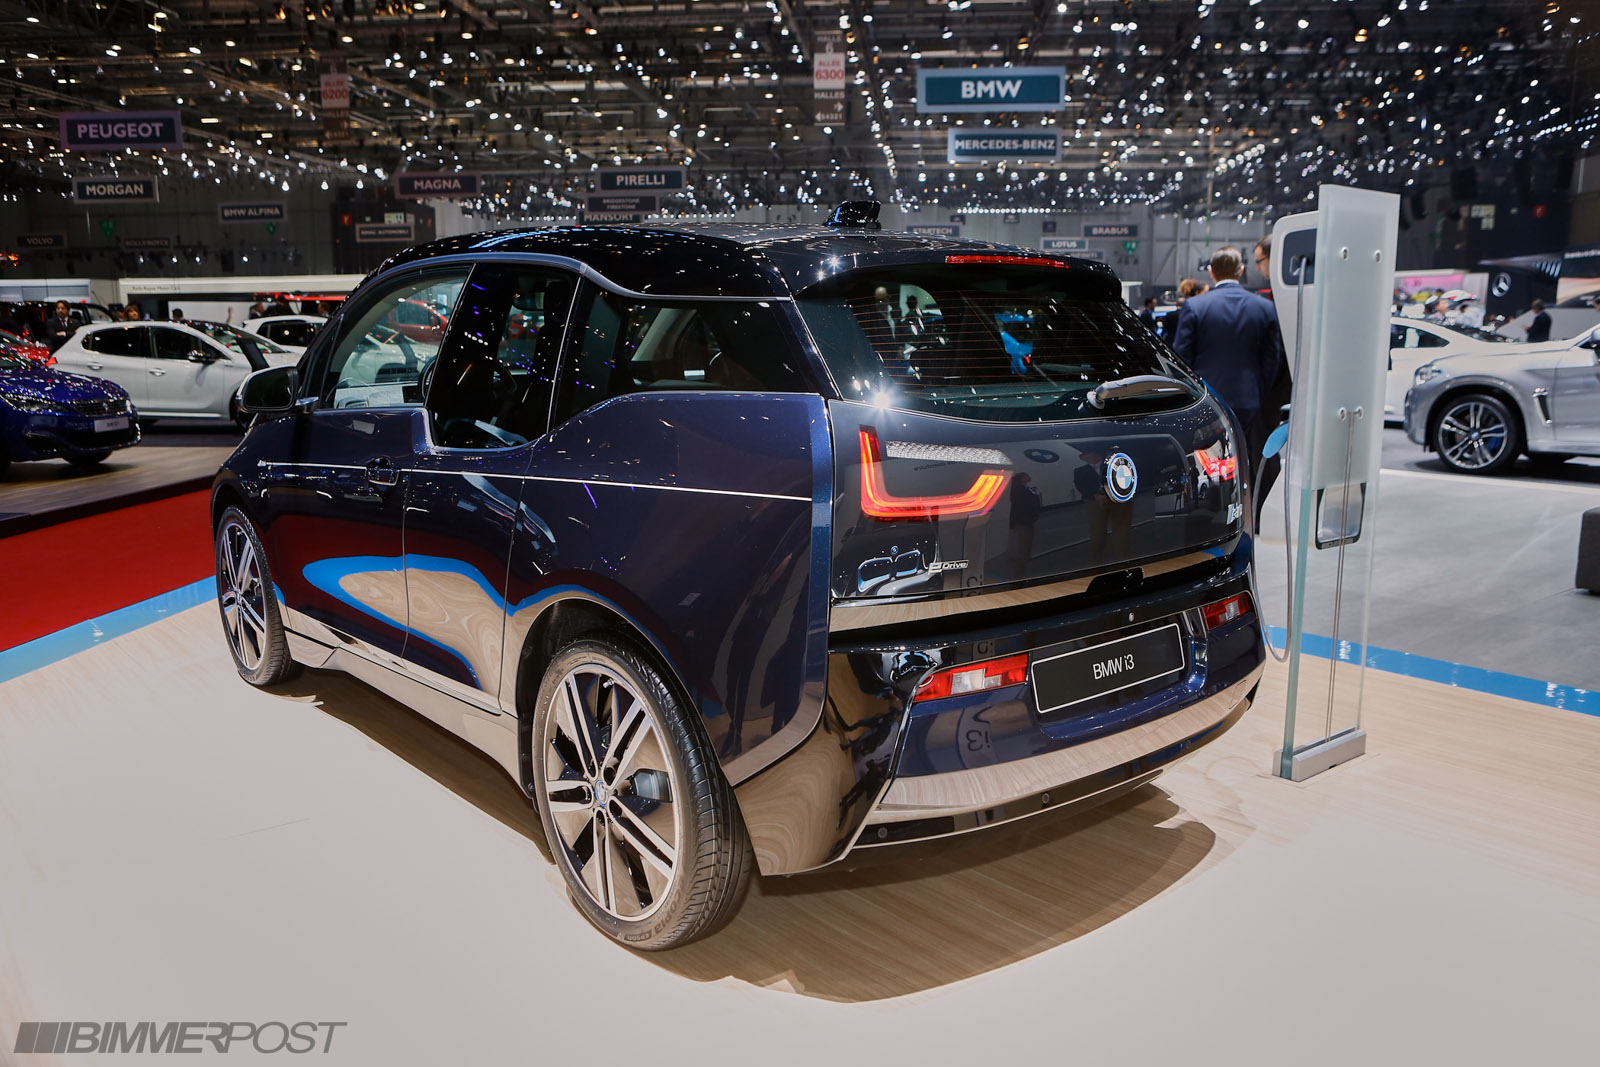 geneva 2016 bmw i3 mr porter edition. Black Bedroom Furniture Sets. Home Design Ideas